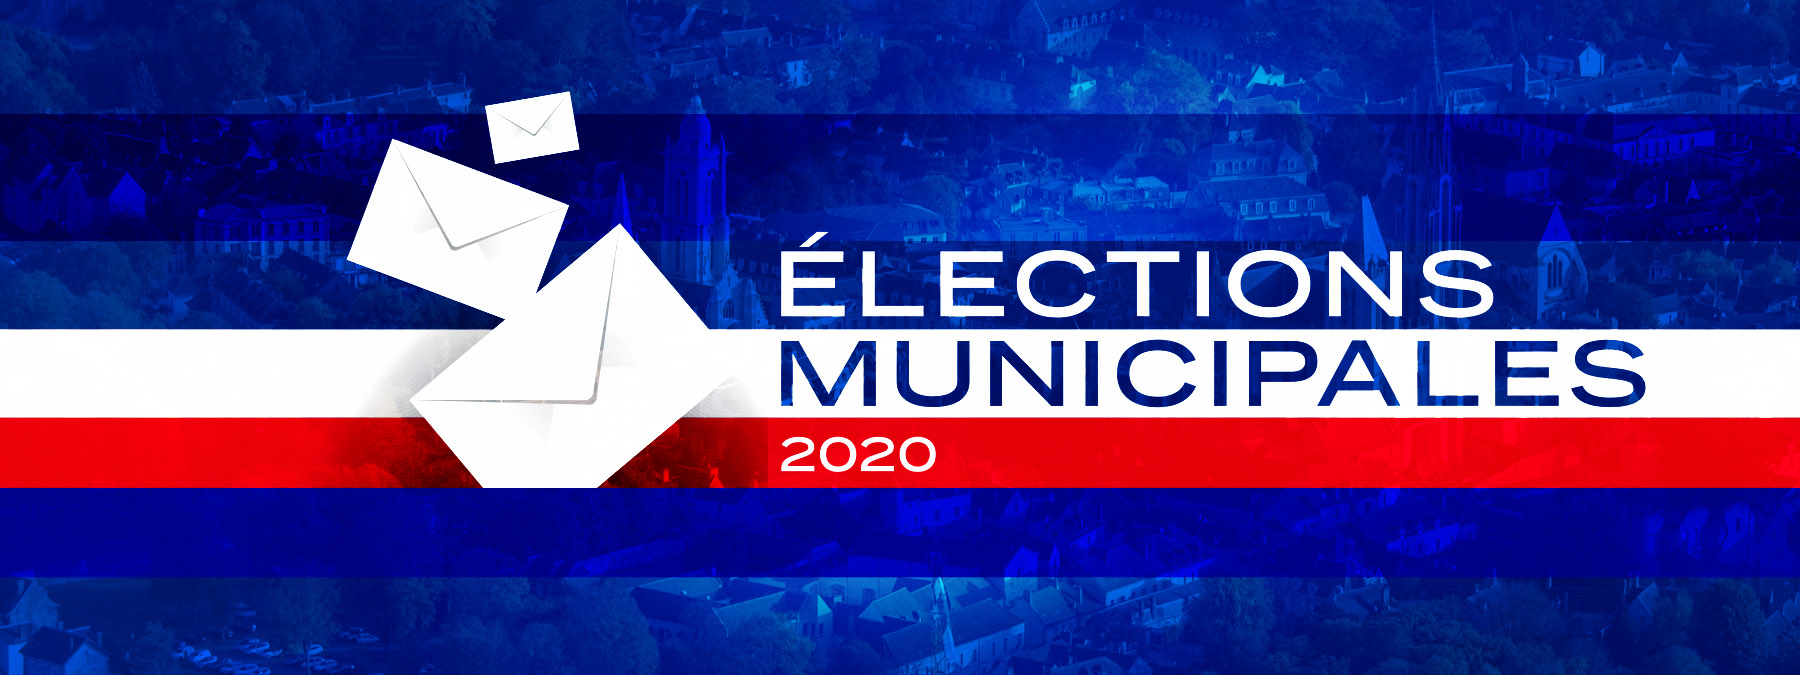 ELECTIONS 2020